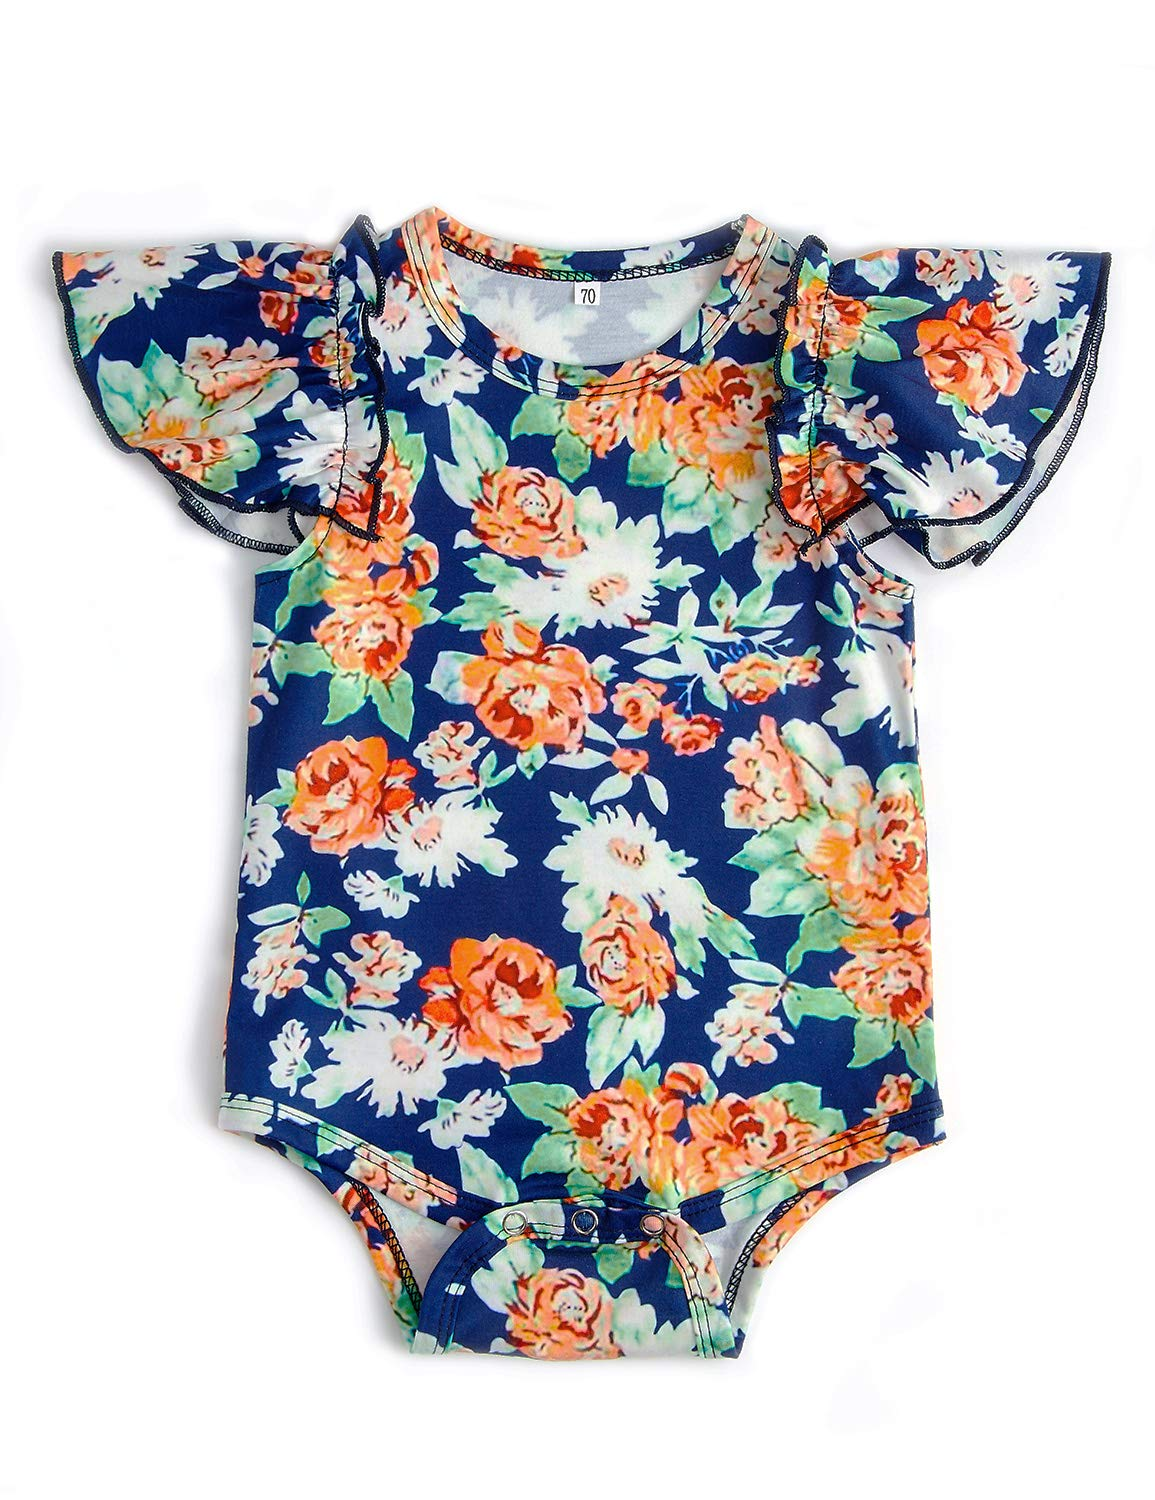 Leapparel 0-6 Months Newborn Girl Romper Unisex Baby Jumpsuit Classical Orange Flower Print Playsuit Snap Button Easy to Change Diaper